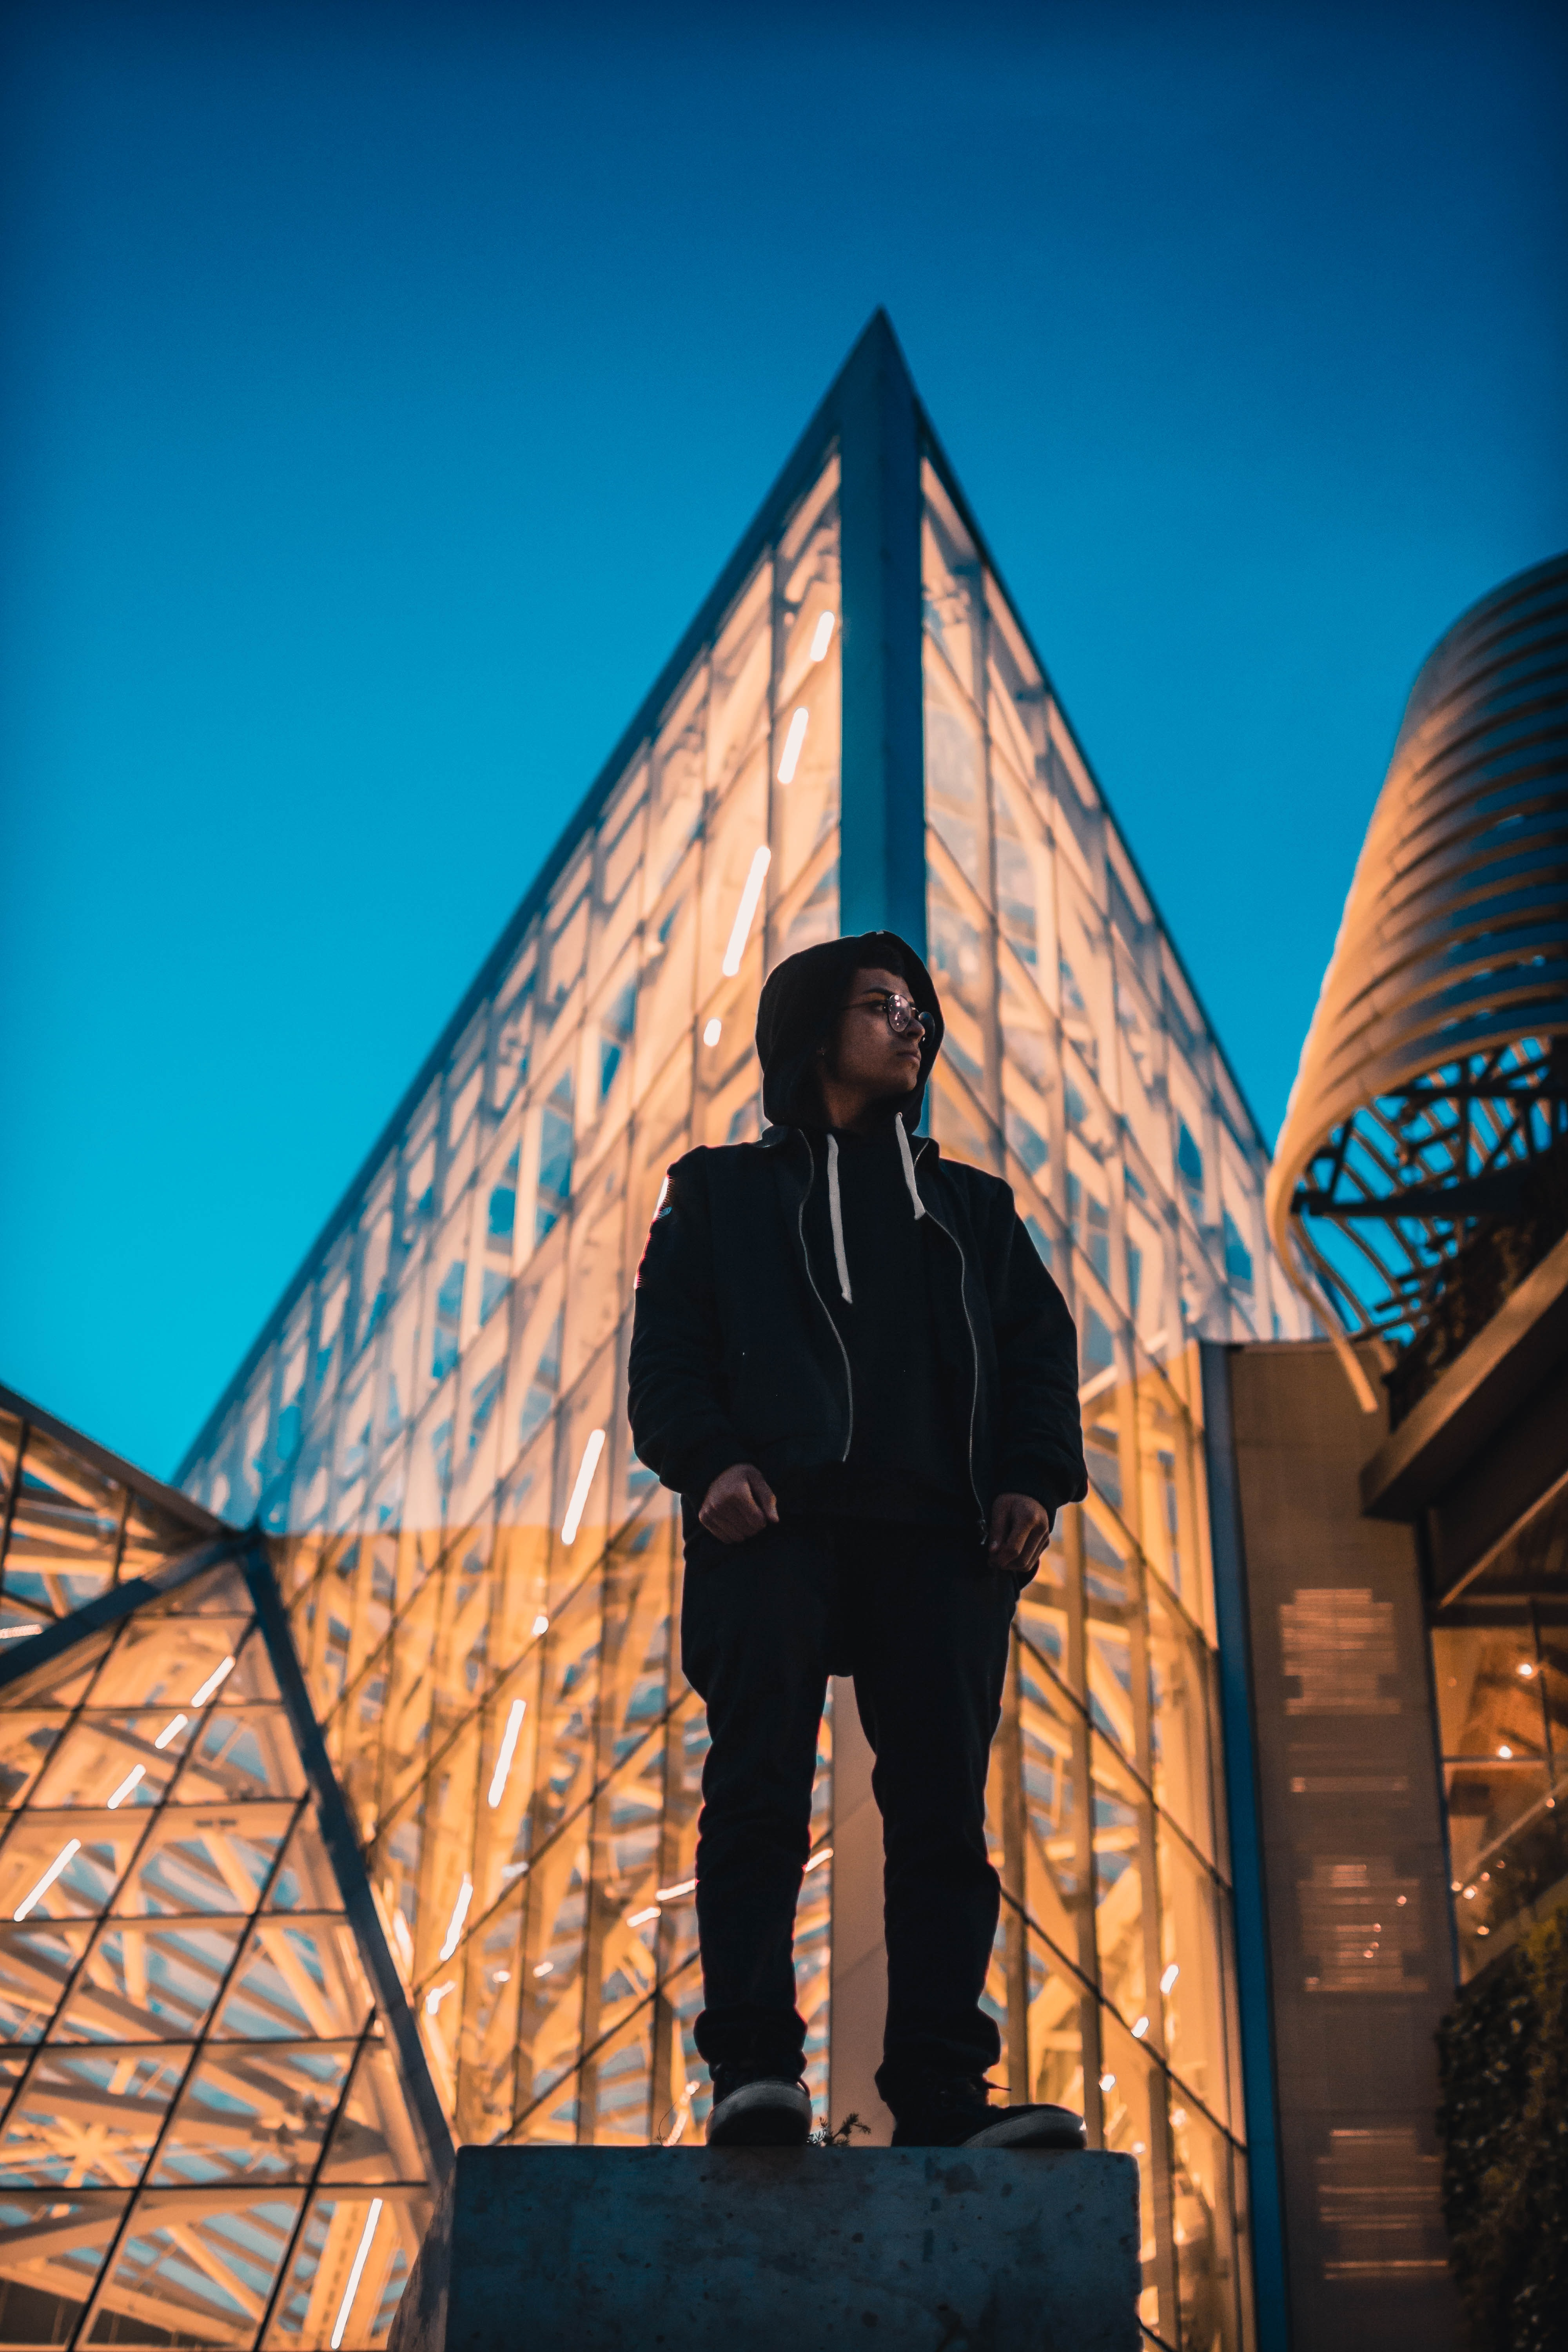 man standing front of curtain wall building at night time